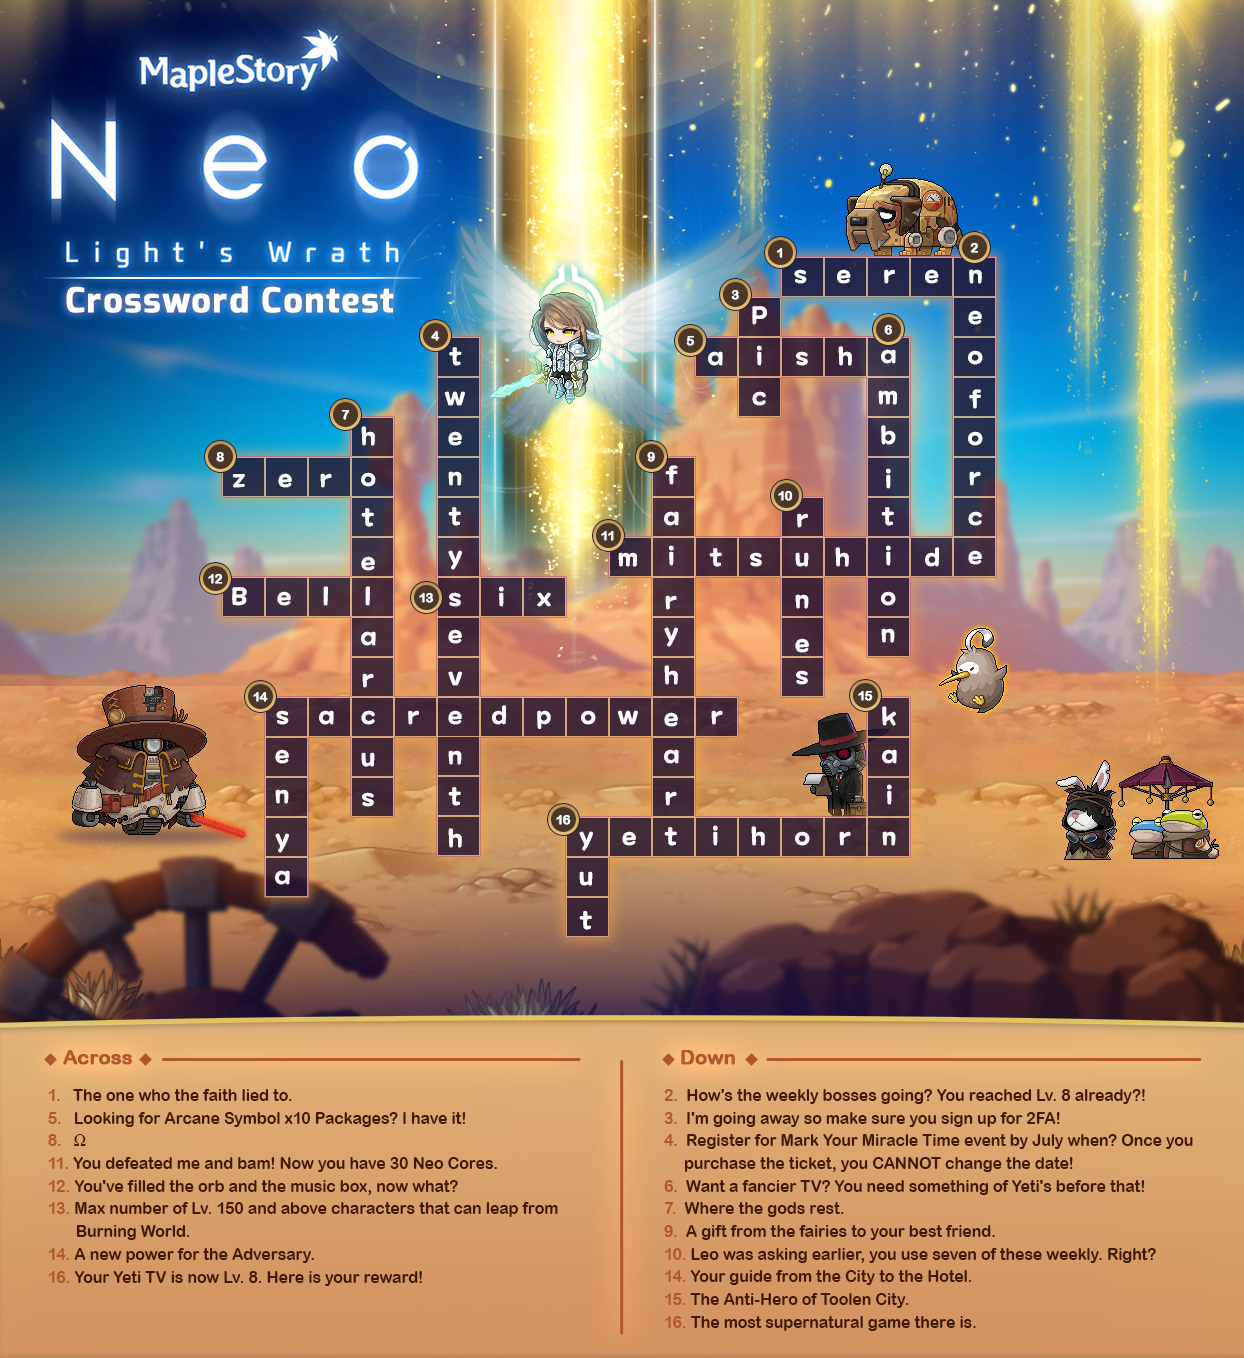 MapleStory-Neo-Crossword-Contest_v1_answers.png